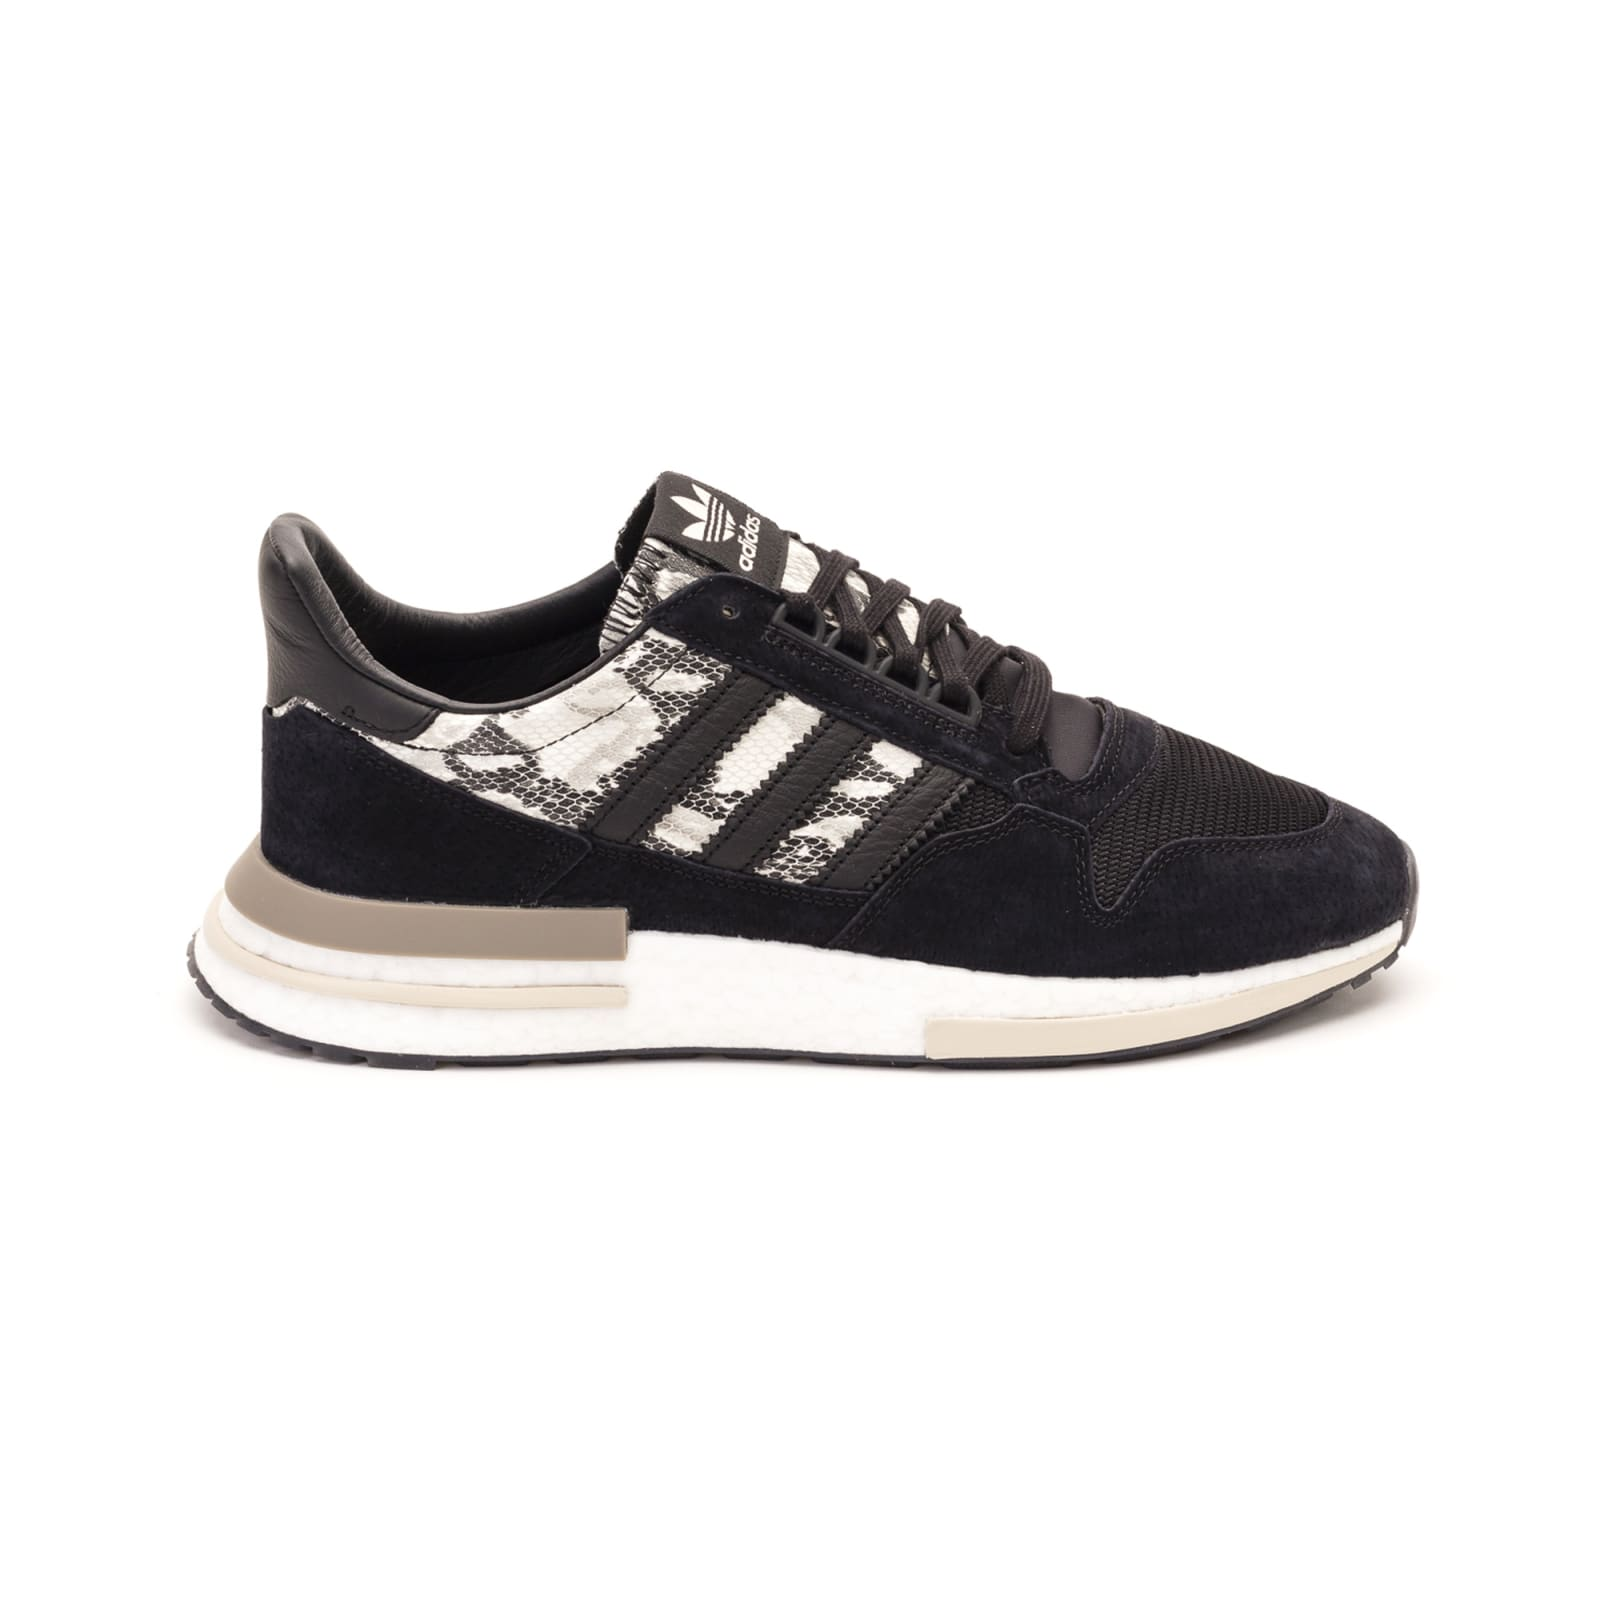 acheter populaire e1521 3fcdd Adidas Zx 500 Rm Sneakers